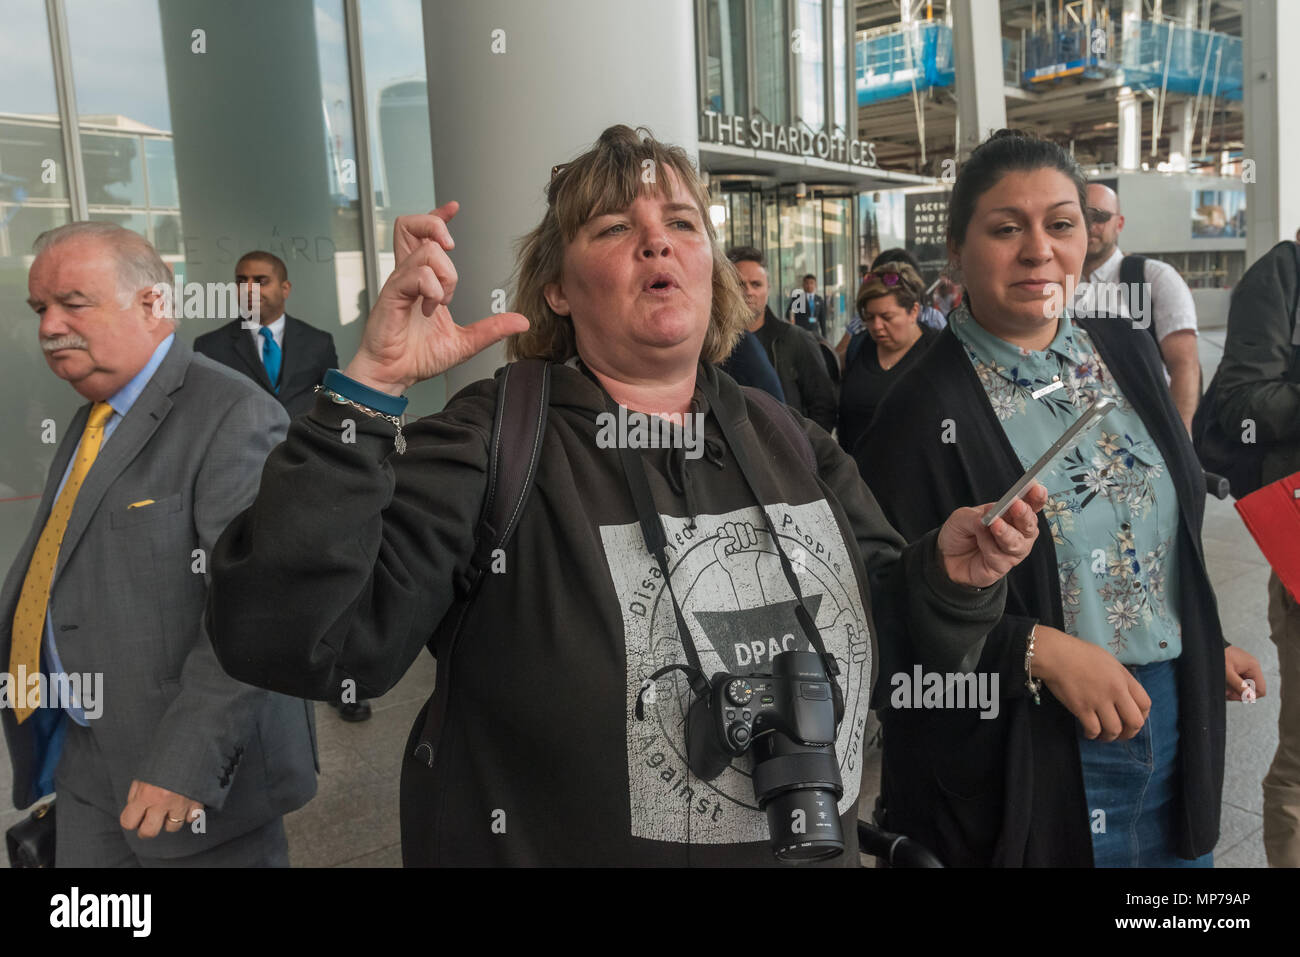 London, UK. 21st May 2018. Paula Peters of DPAC speaks at the 'People's Picket' by disabled rail passengers from Disabled People Against Cuts along with the Association of British Commuters and RMT members outside London Bridge station, reading out a tweet  from GTR compalining that their staff training guide is private. In it, the disabled are dehumanised as 'PRM's  and staff are instructed to leave wheelchair users on the platform, even when they have arranged and pre-booked a journey. Credit: Peter Marshall/Alamy Live News - Stock Image